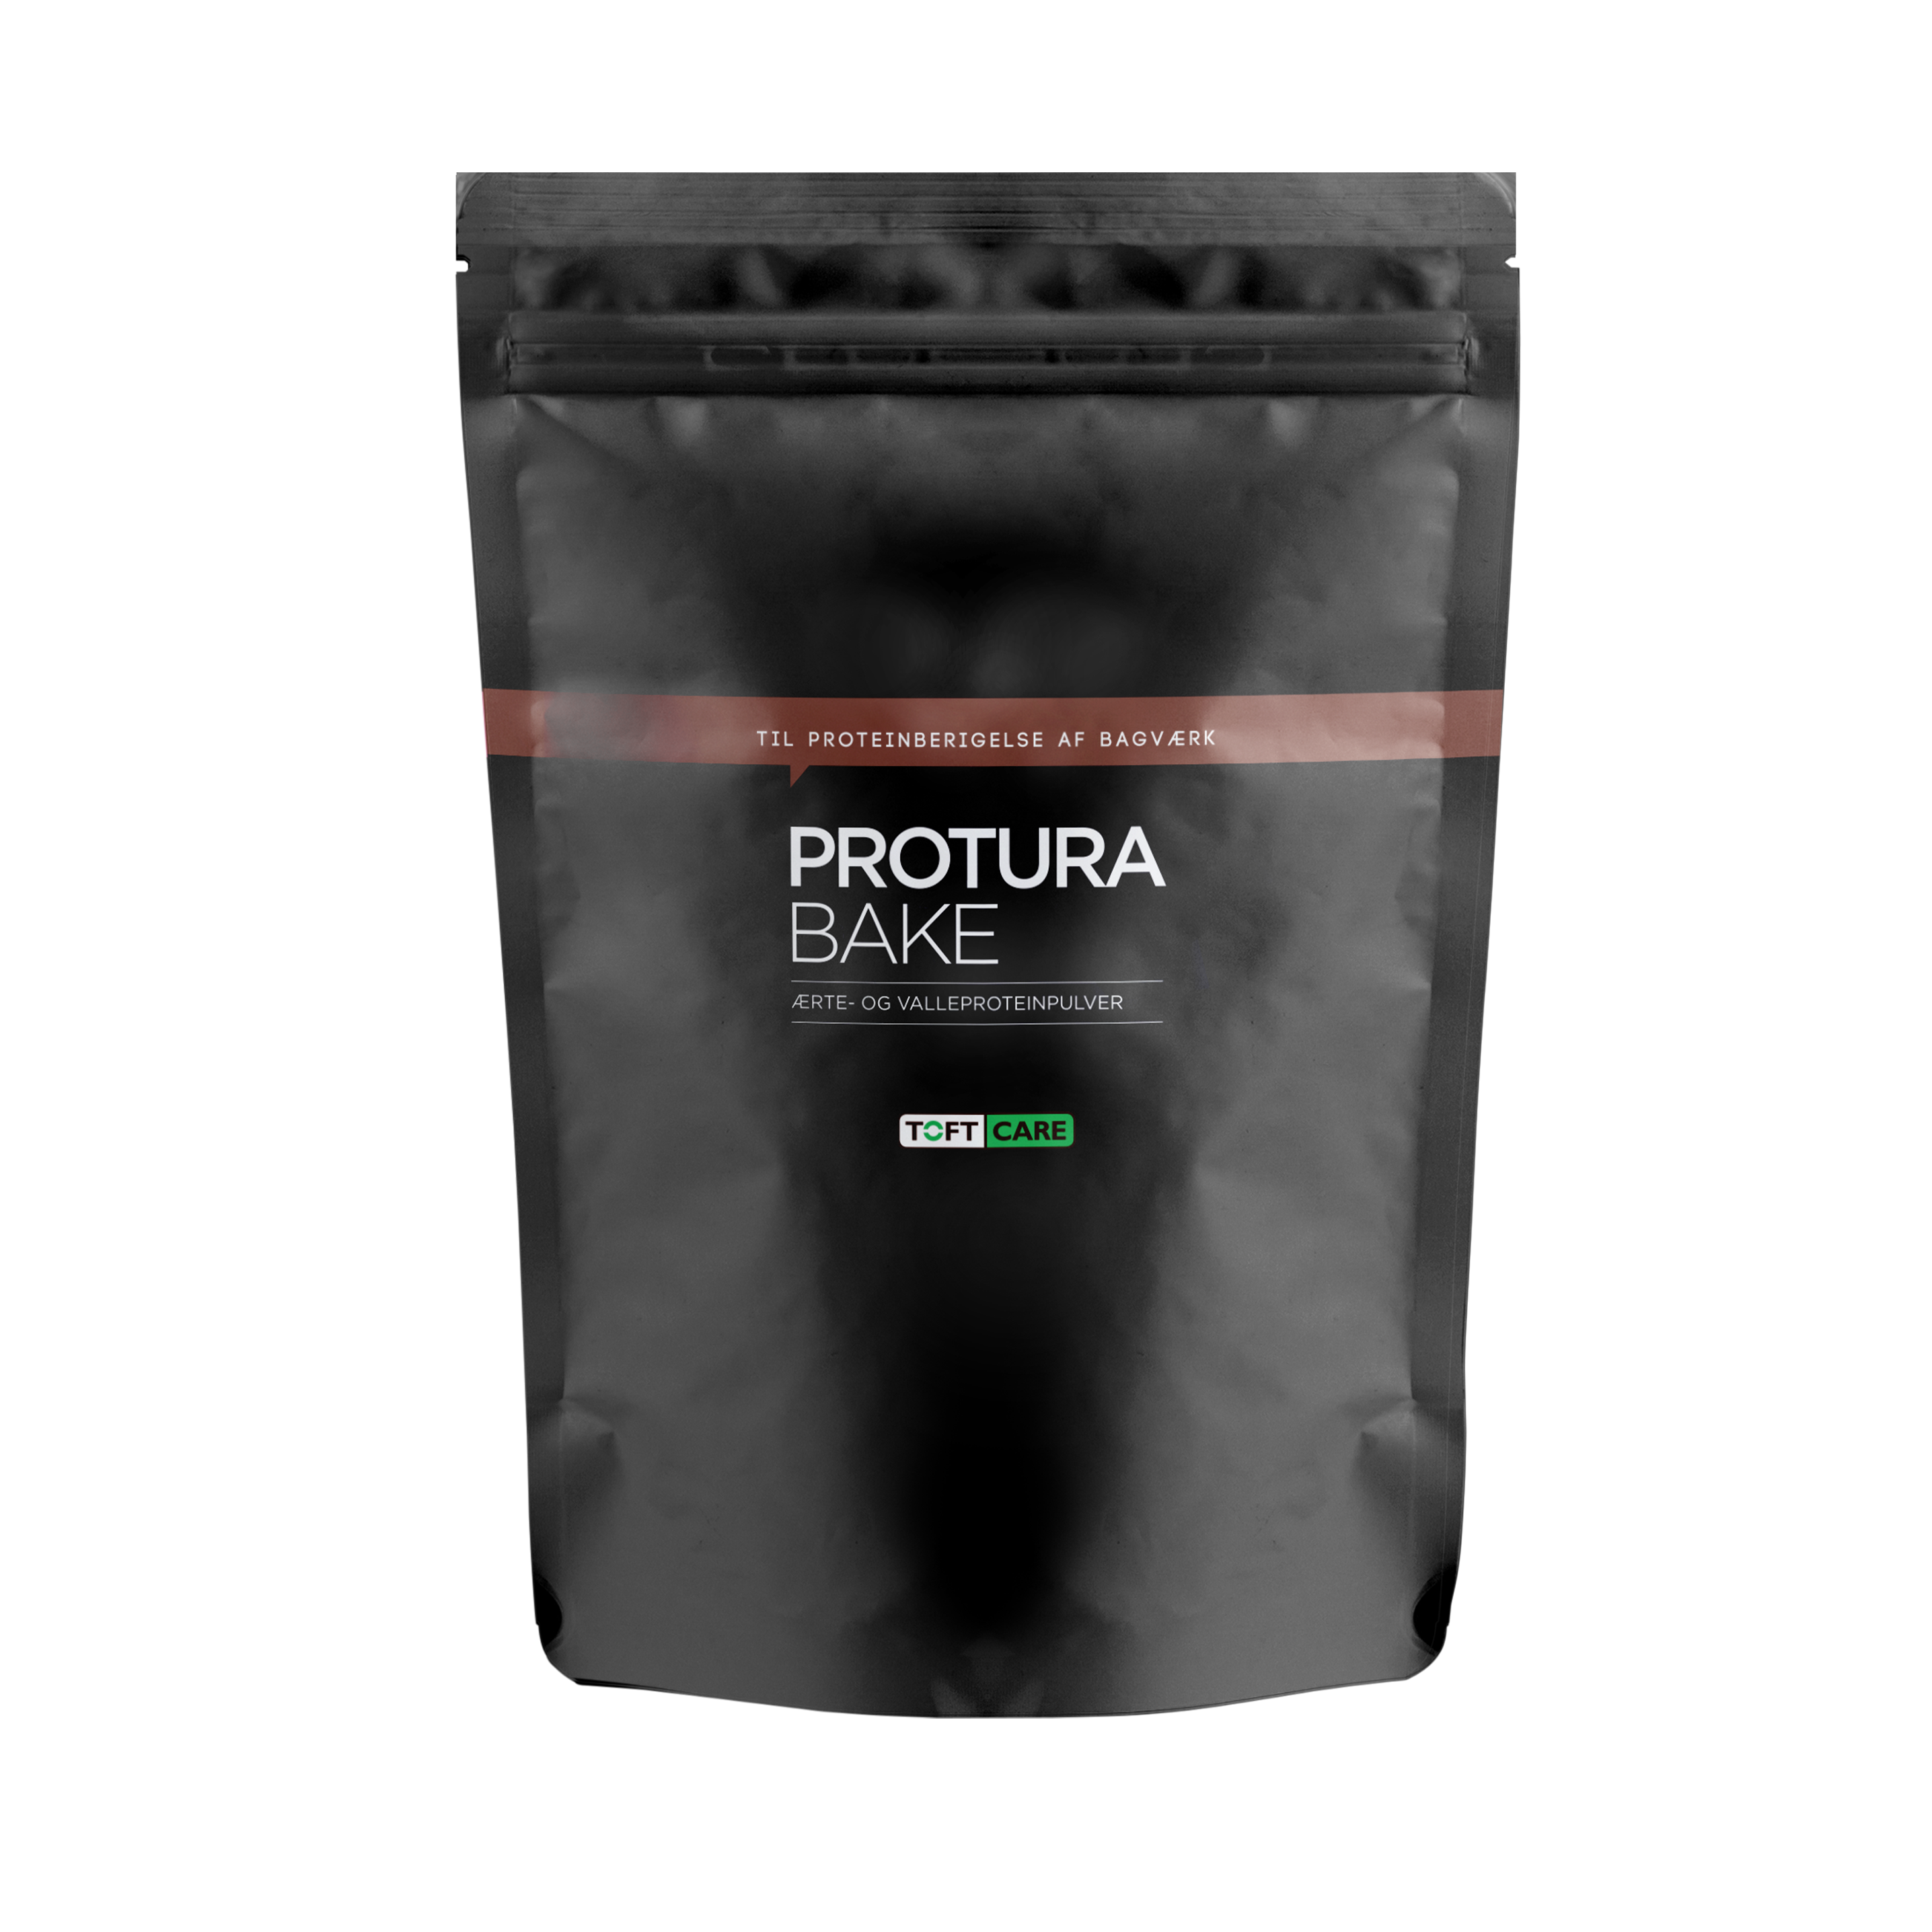 Image of Protura Bake 600 g